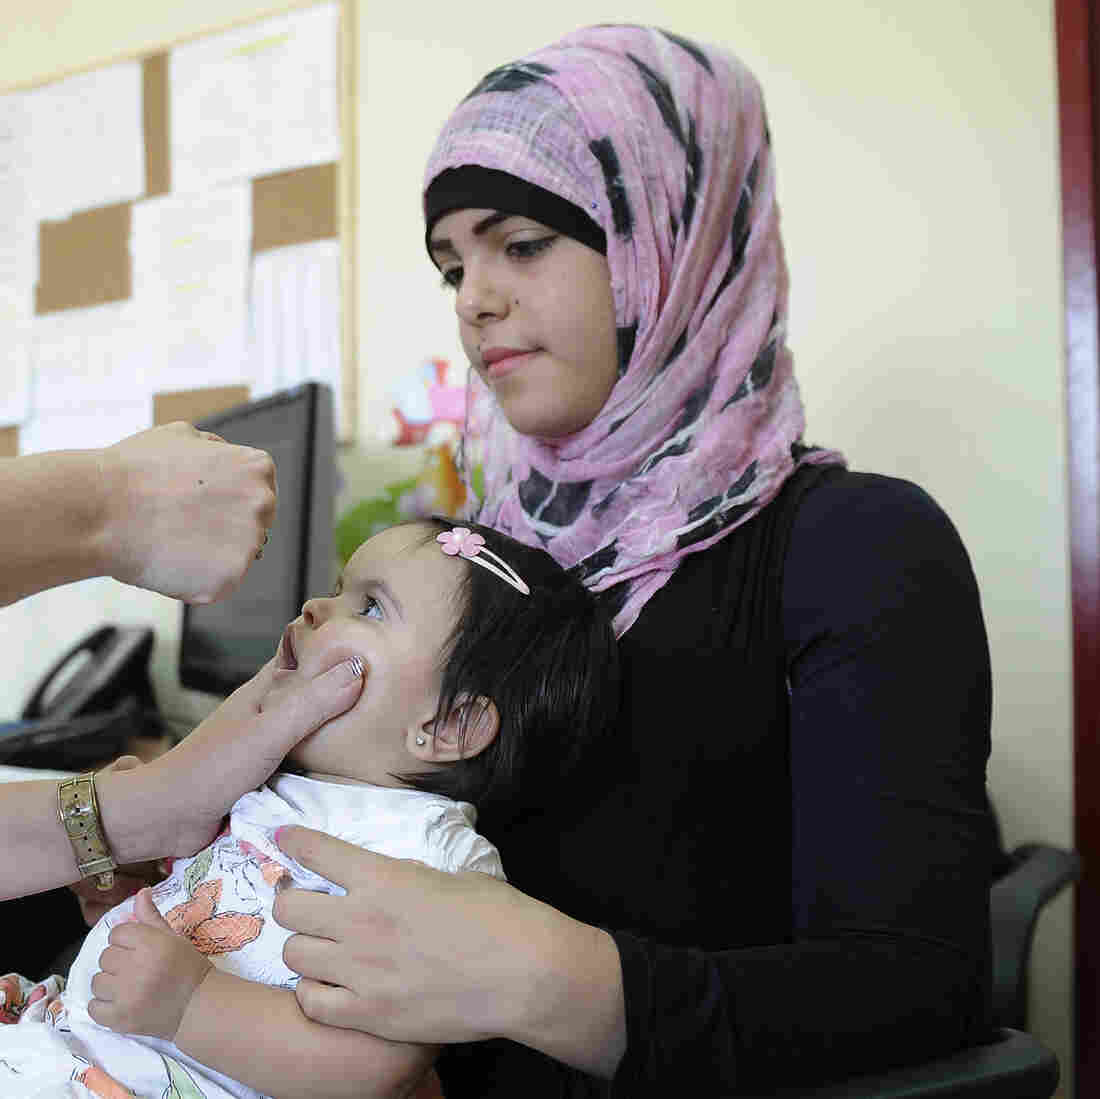 Israel Rushes To Stop Polio From Returning